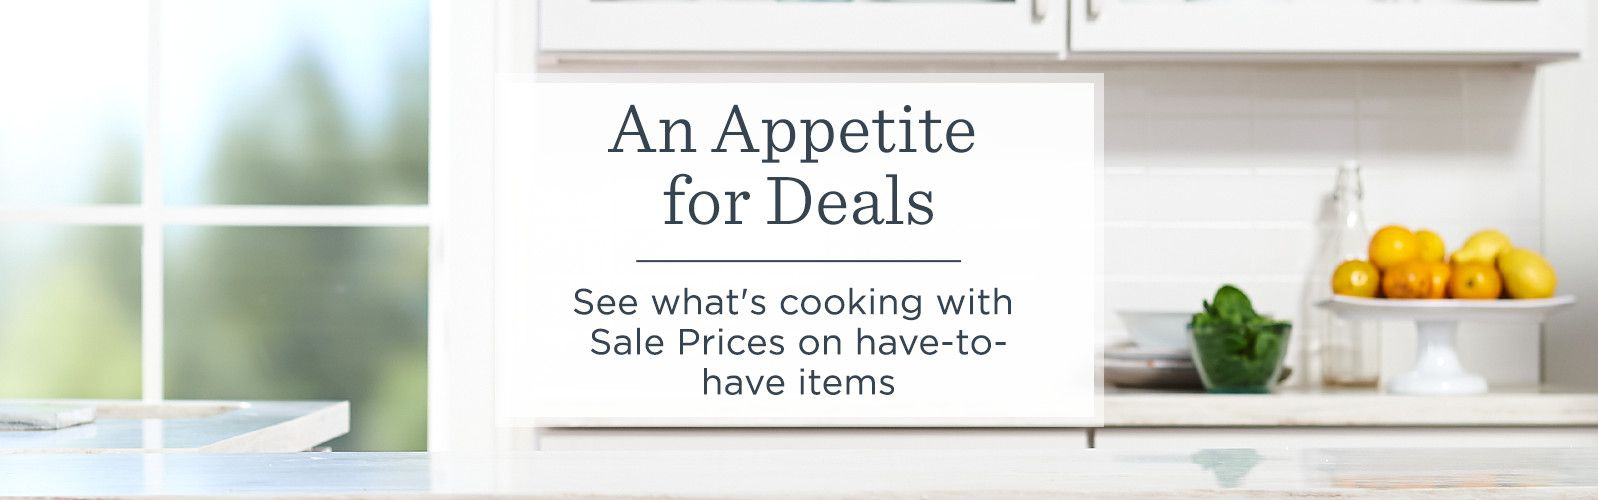 An Appetite for Deals — See what's cooking with Sale Prices on have-to-have items